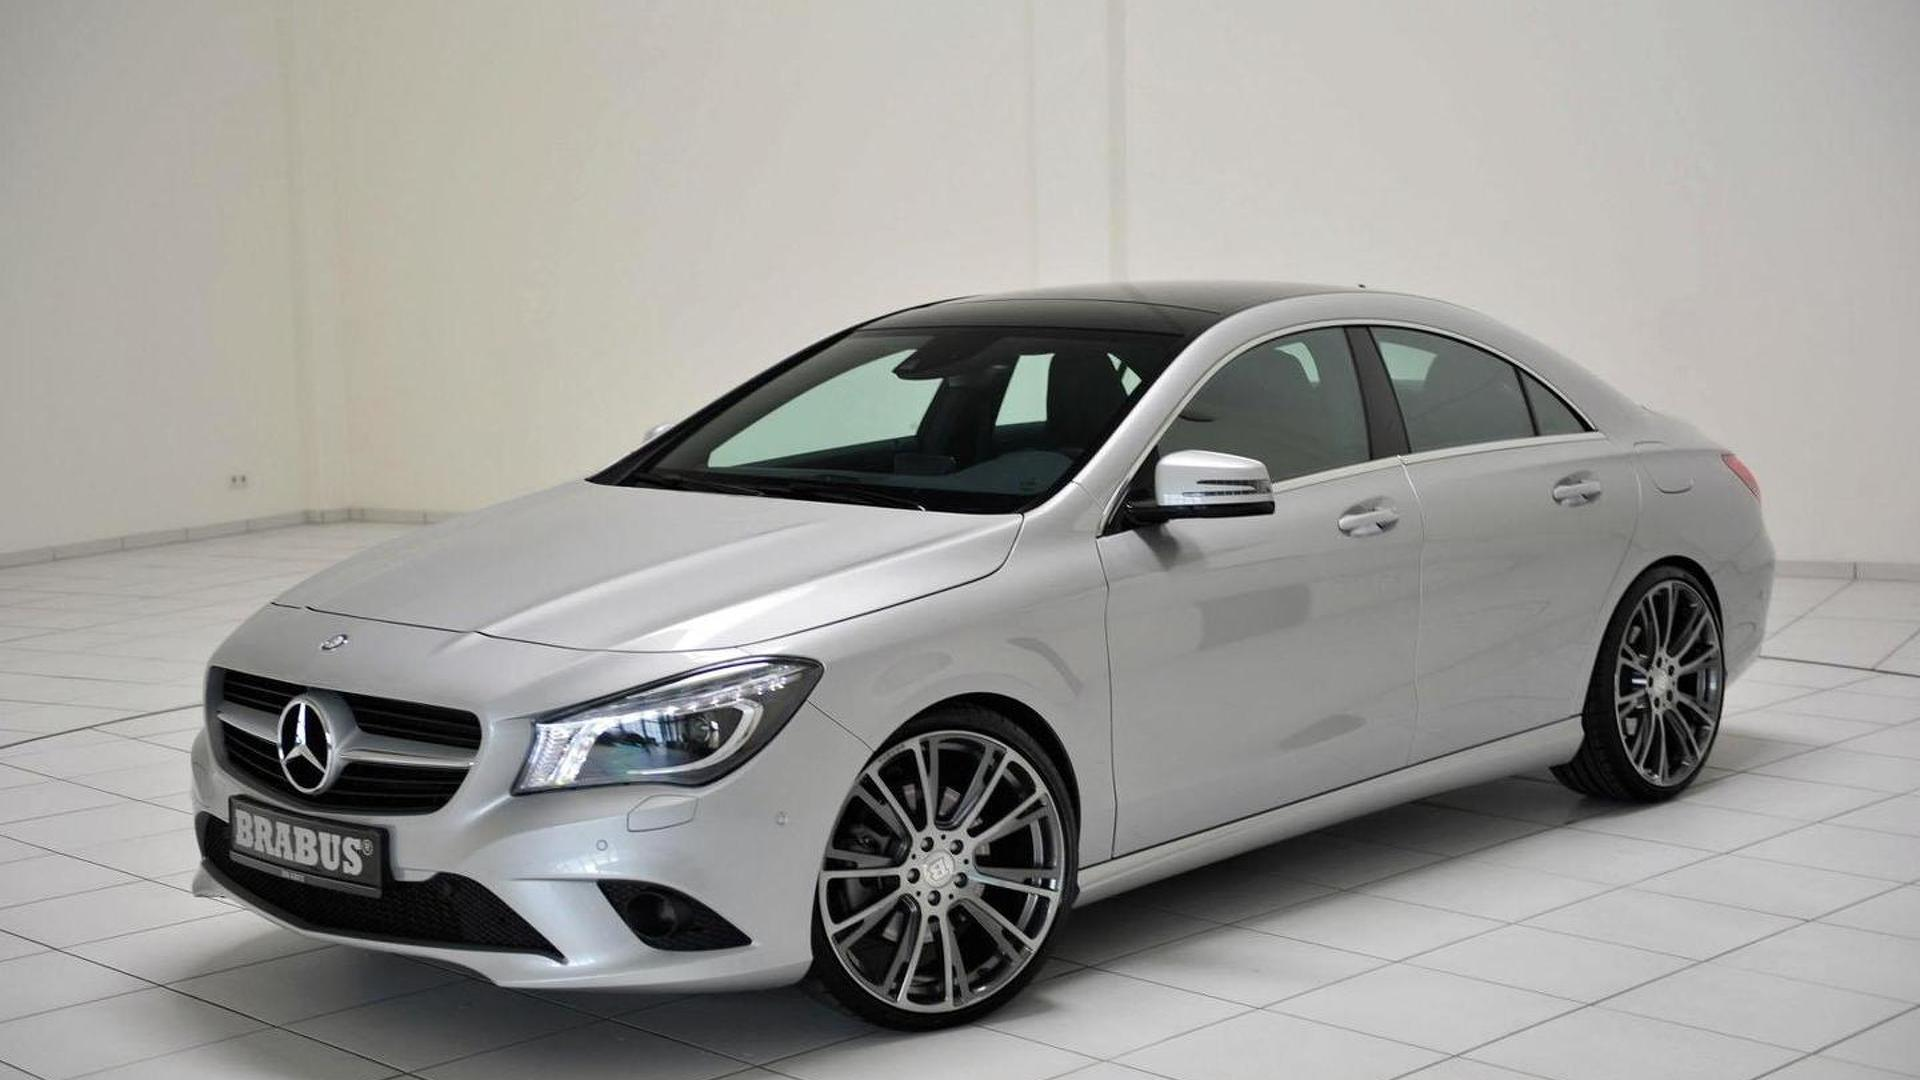 Brabus tunes the Mercedes CLA